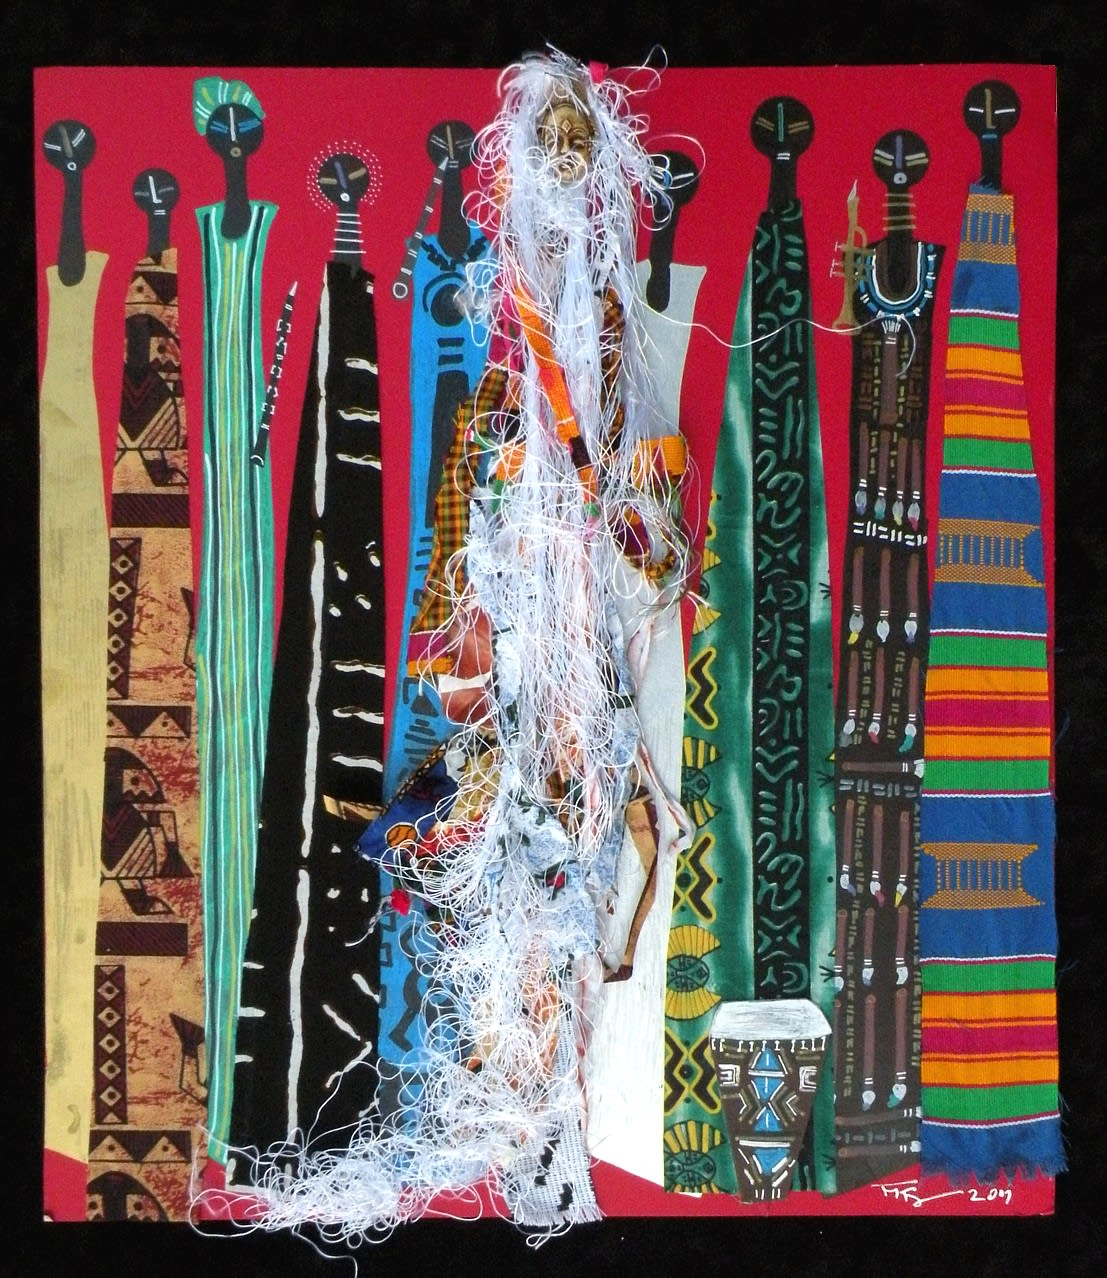 Frank Frazier Ubuntu, 2009 Mixed Media & Collage on Paper 24 1/2 x 21 1/2